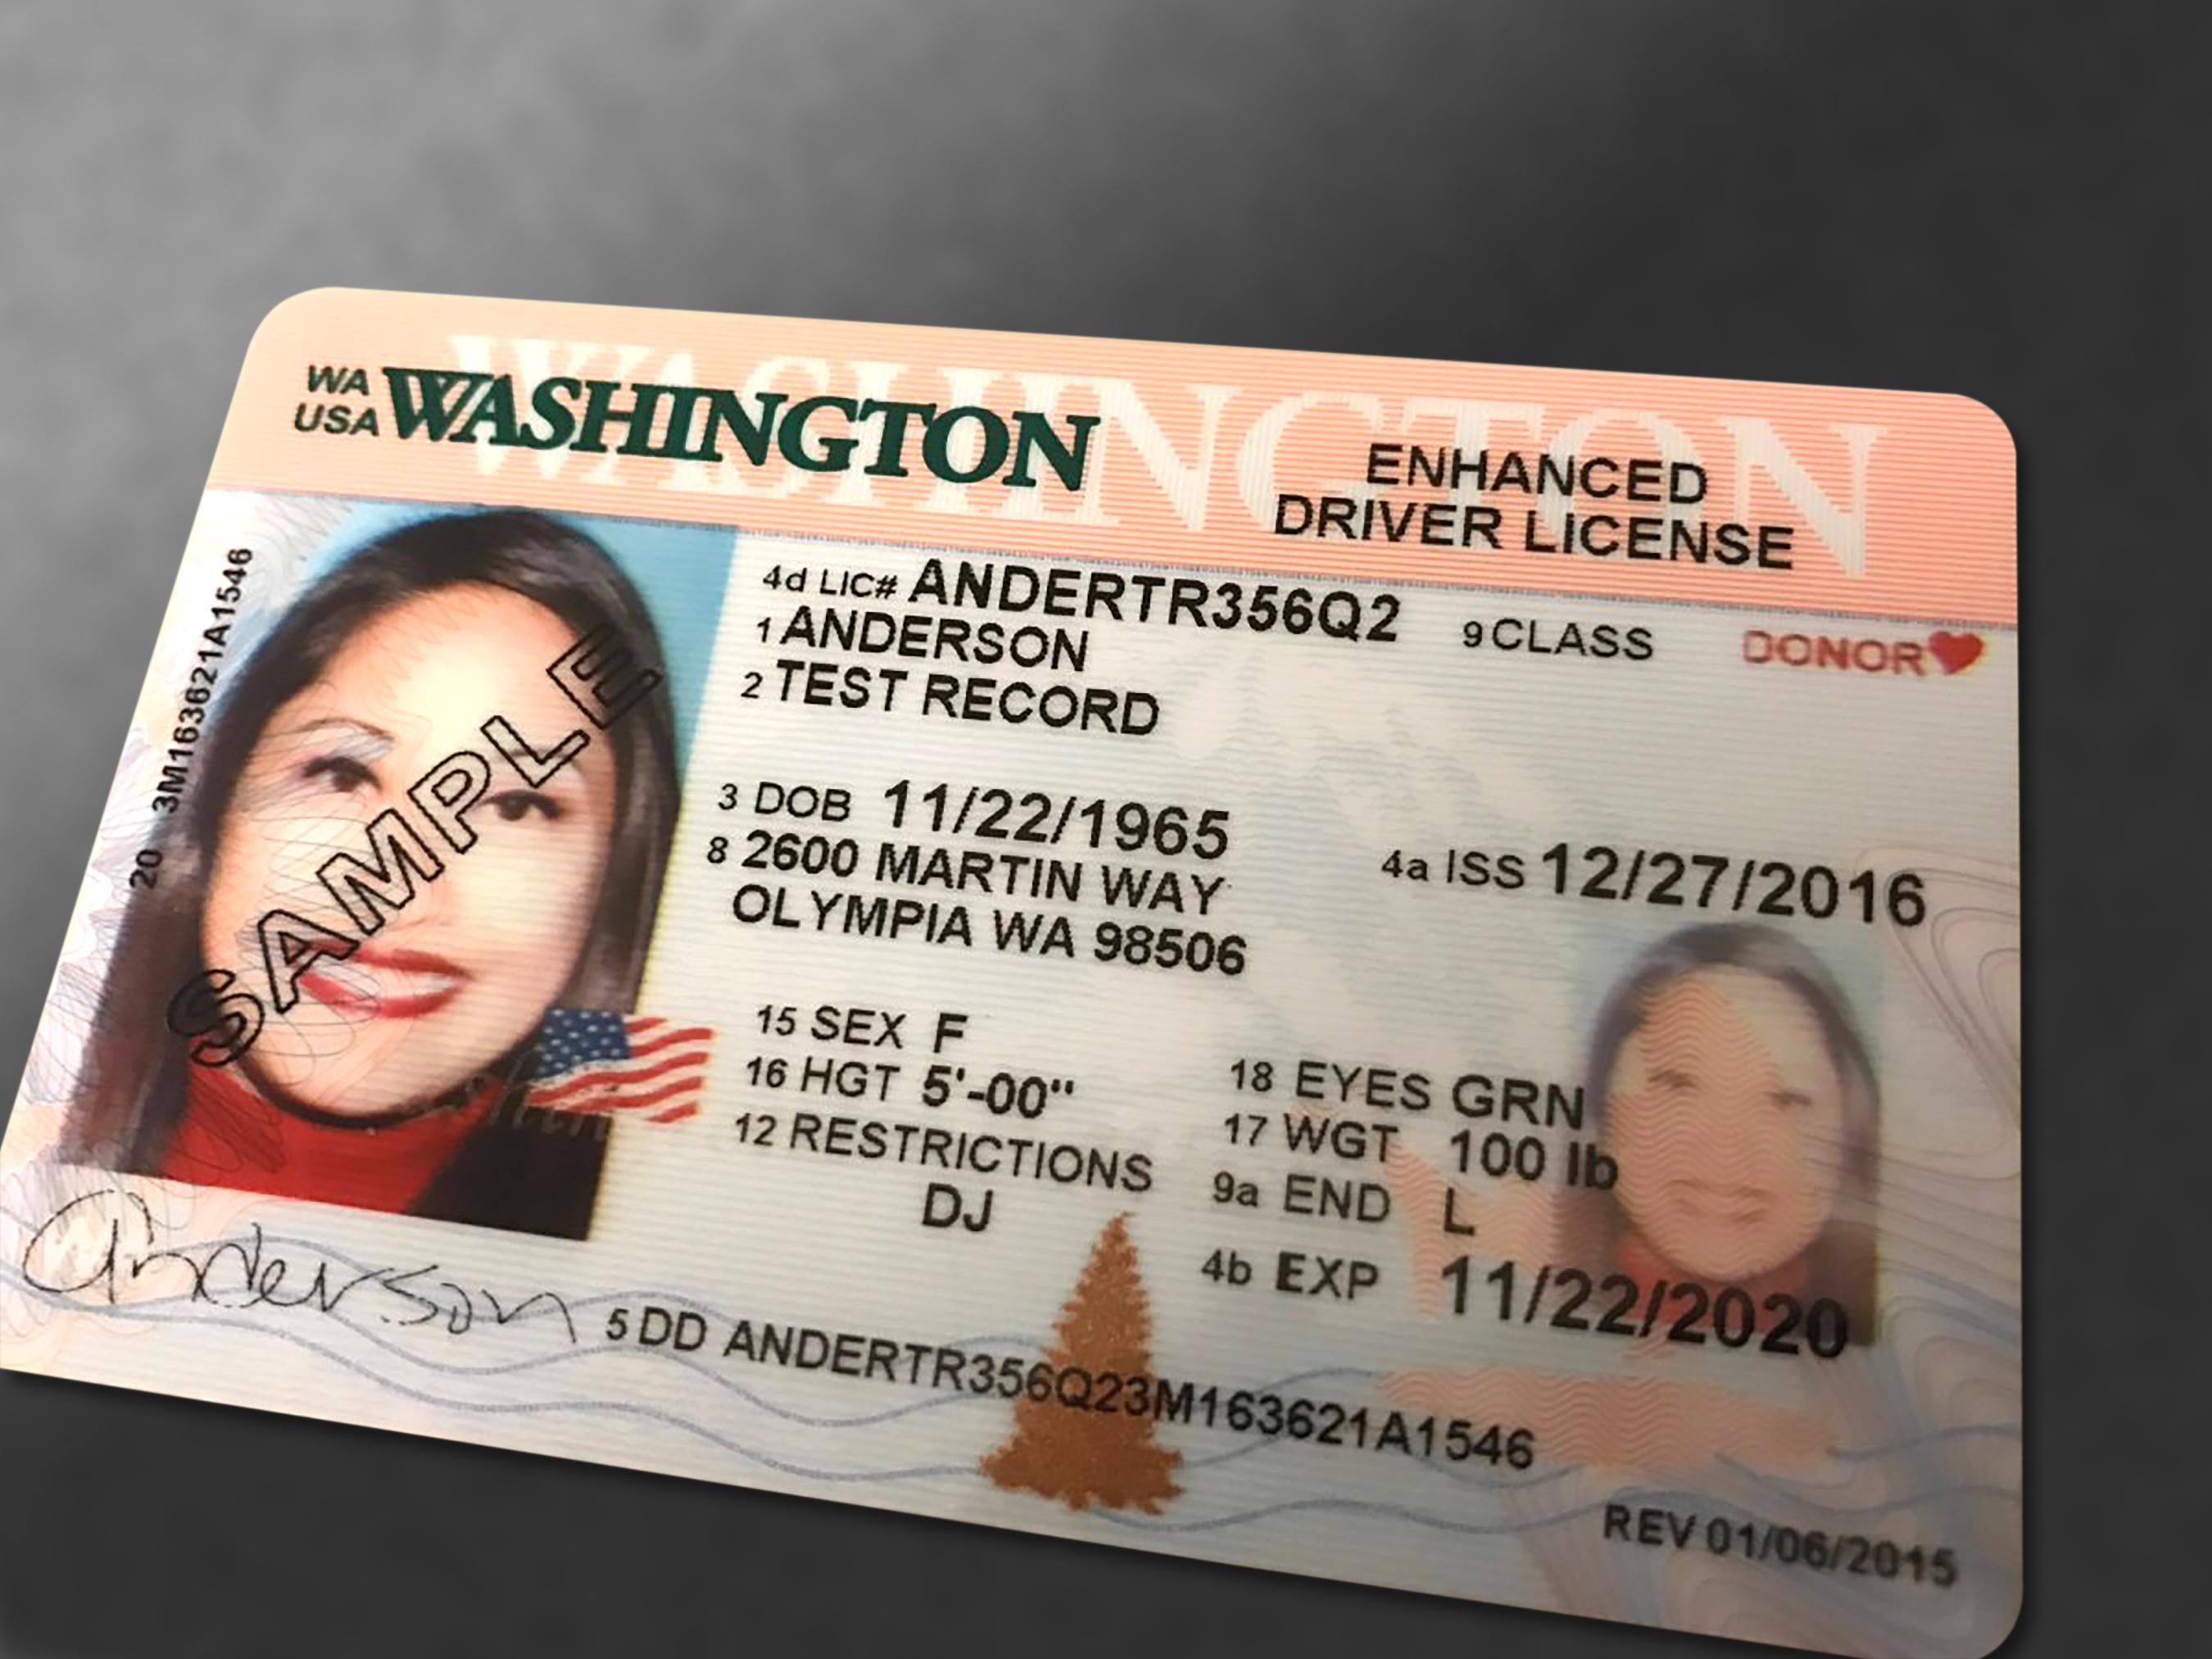 Documents for obtaining a drivers license